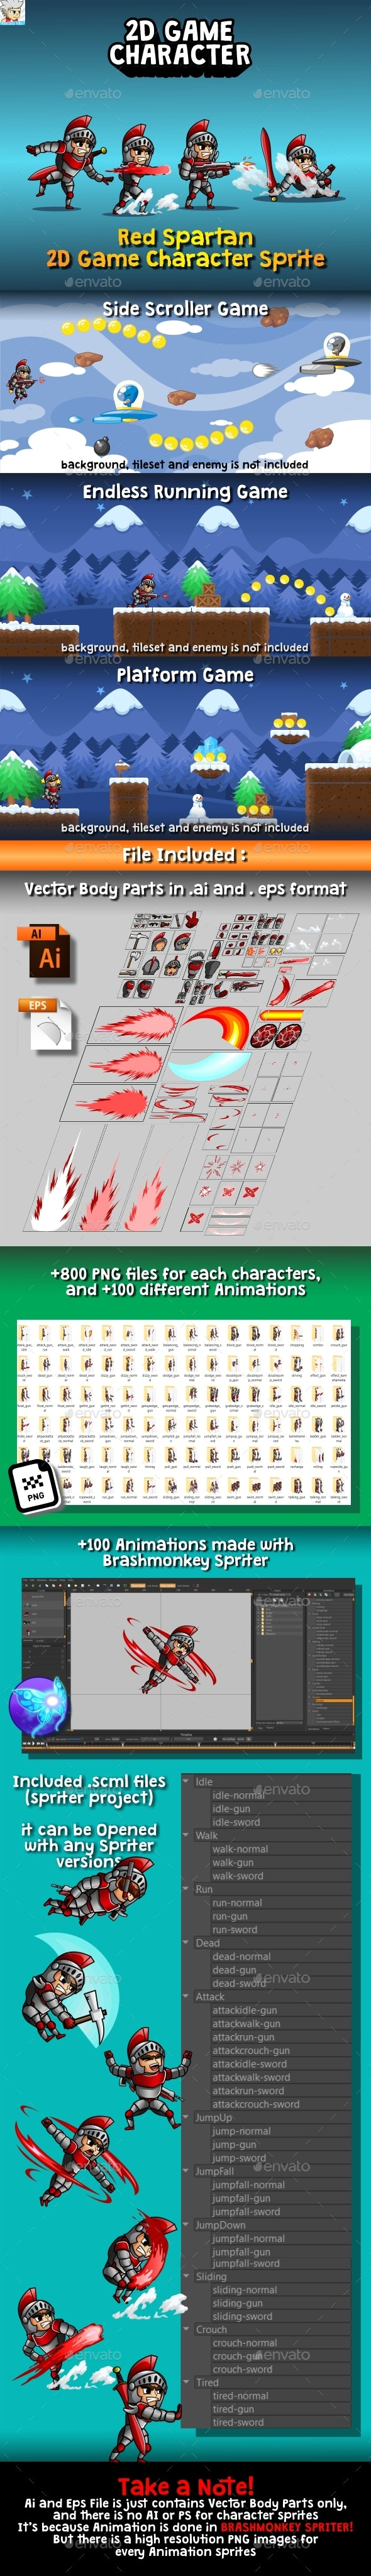 Red Spartan 2D Game Character Sprite - Sprites Game Assets